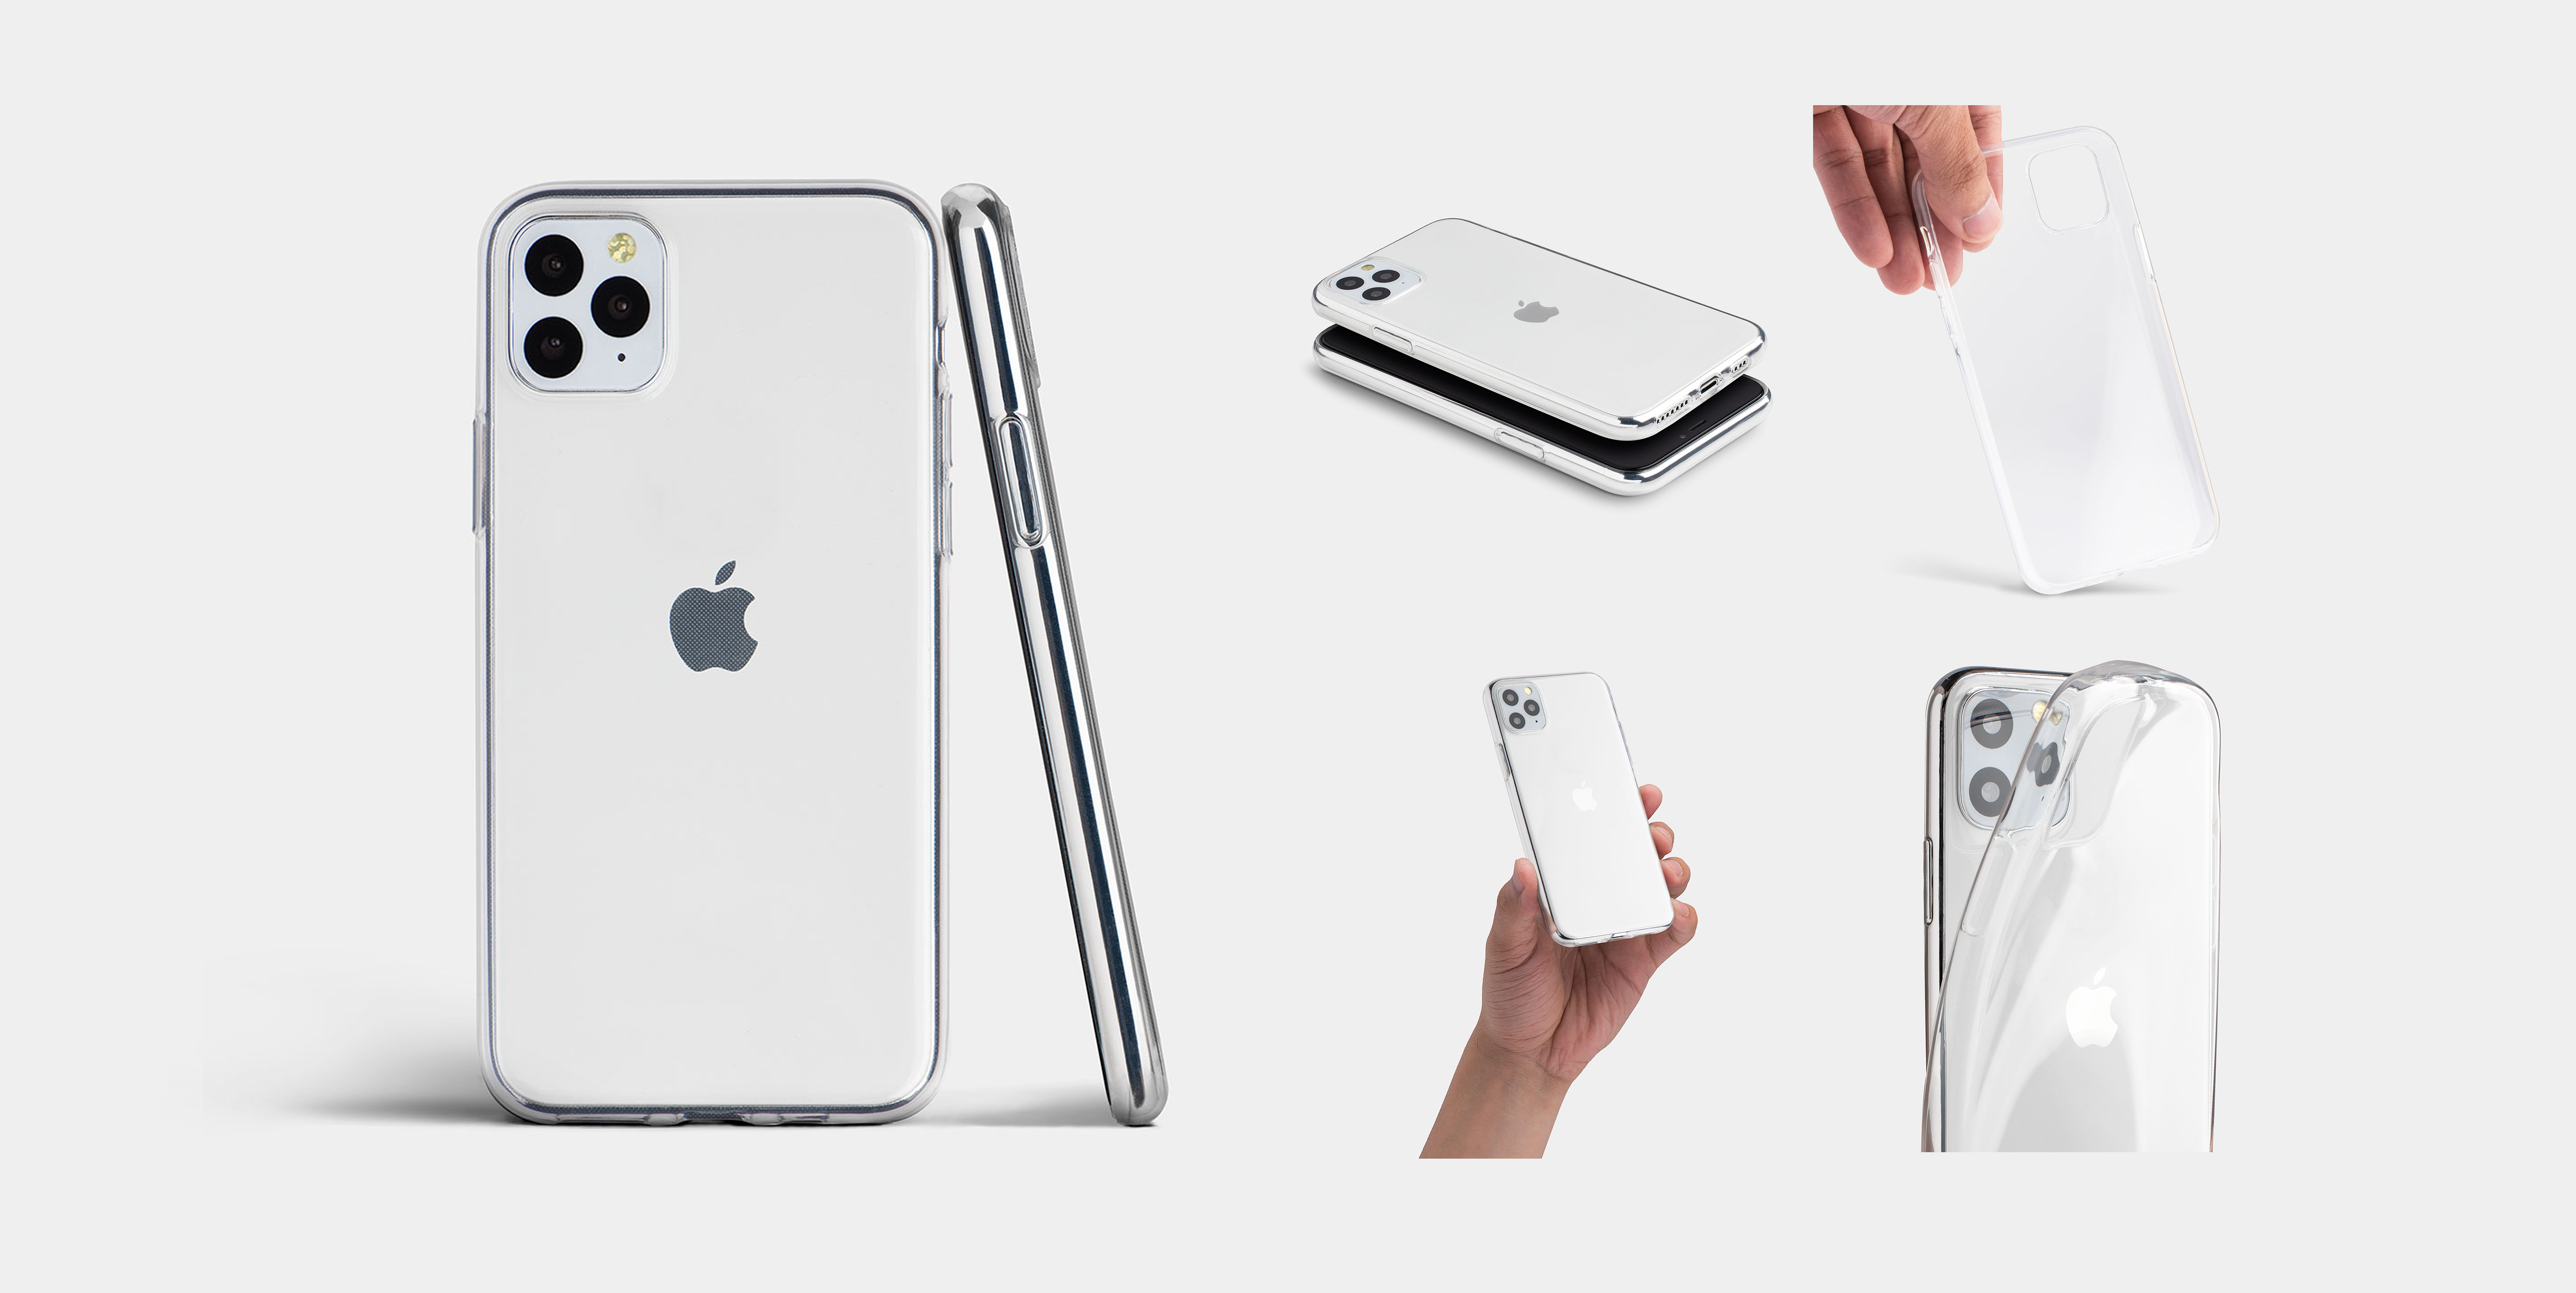 Totallee\u0027s new Clear Case protects and shows off iPhone 11